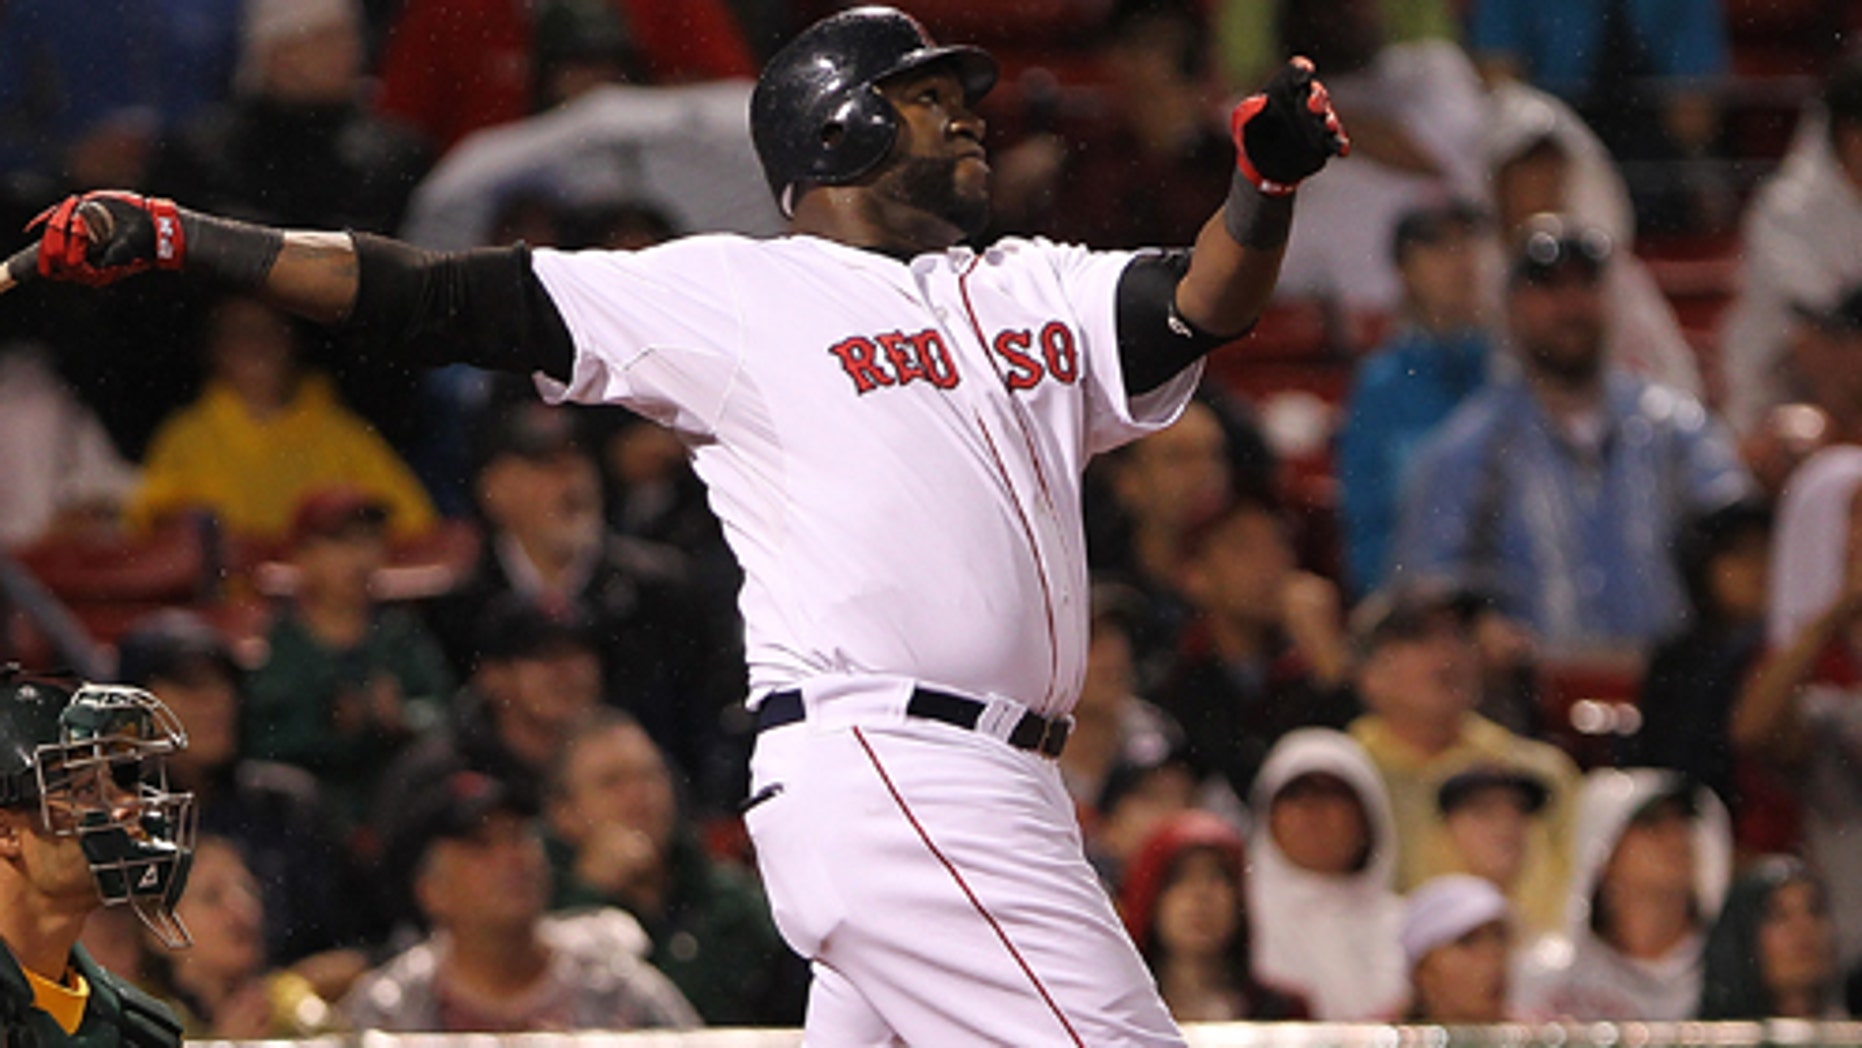 David Ortiz #34 of the Boston Red Sox hits a home run against the Oakland Athletics at Fenway Park on Aug. 27, 2011 in Boston, Massachusetts. (Photo by Jim Rogash/Getty Images)